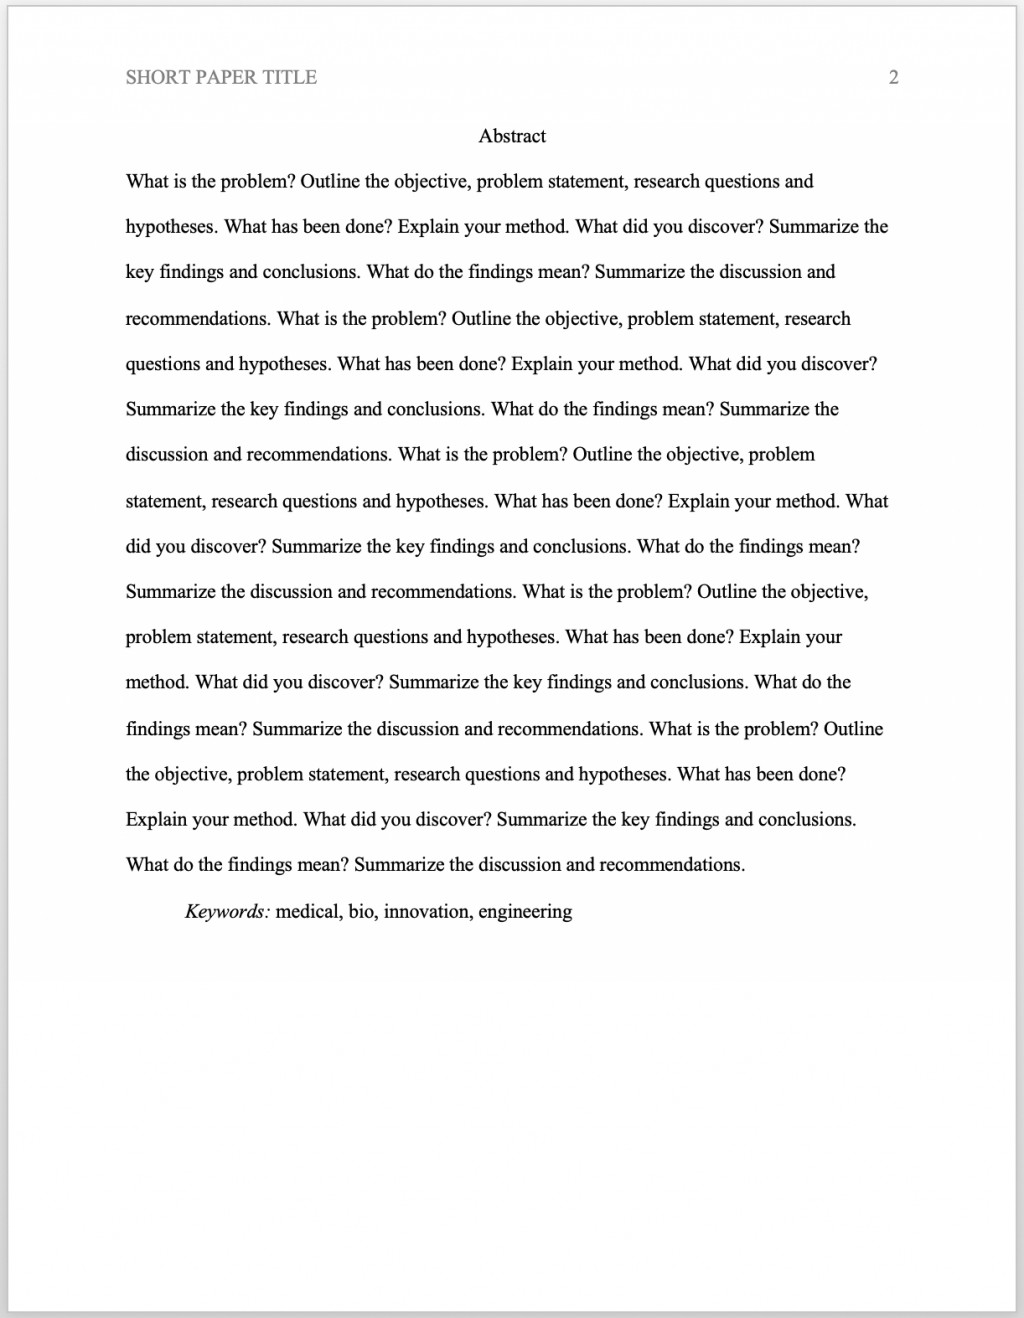 005 Research Paper Apa Abstract How To Cite Shocking An Article In A Online Large